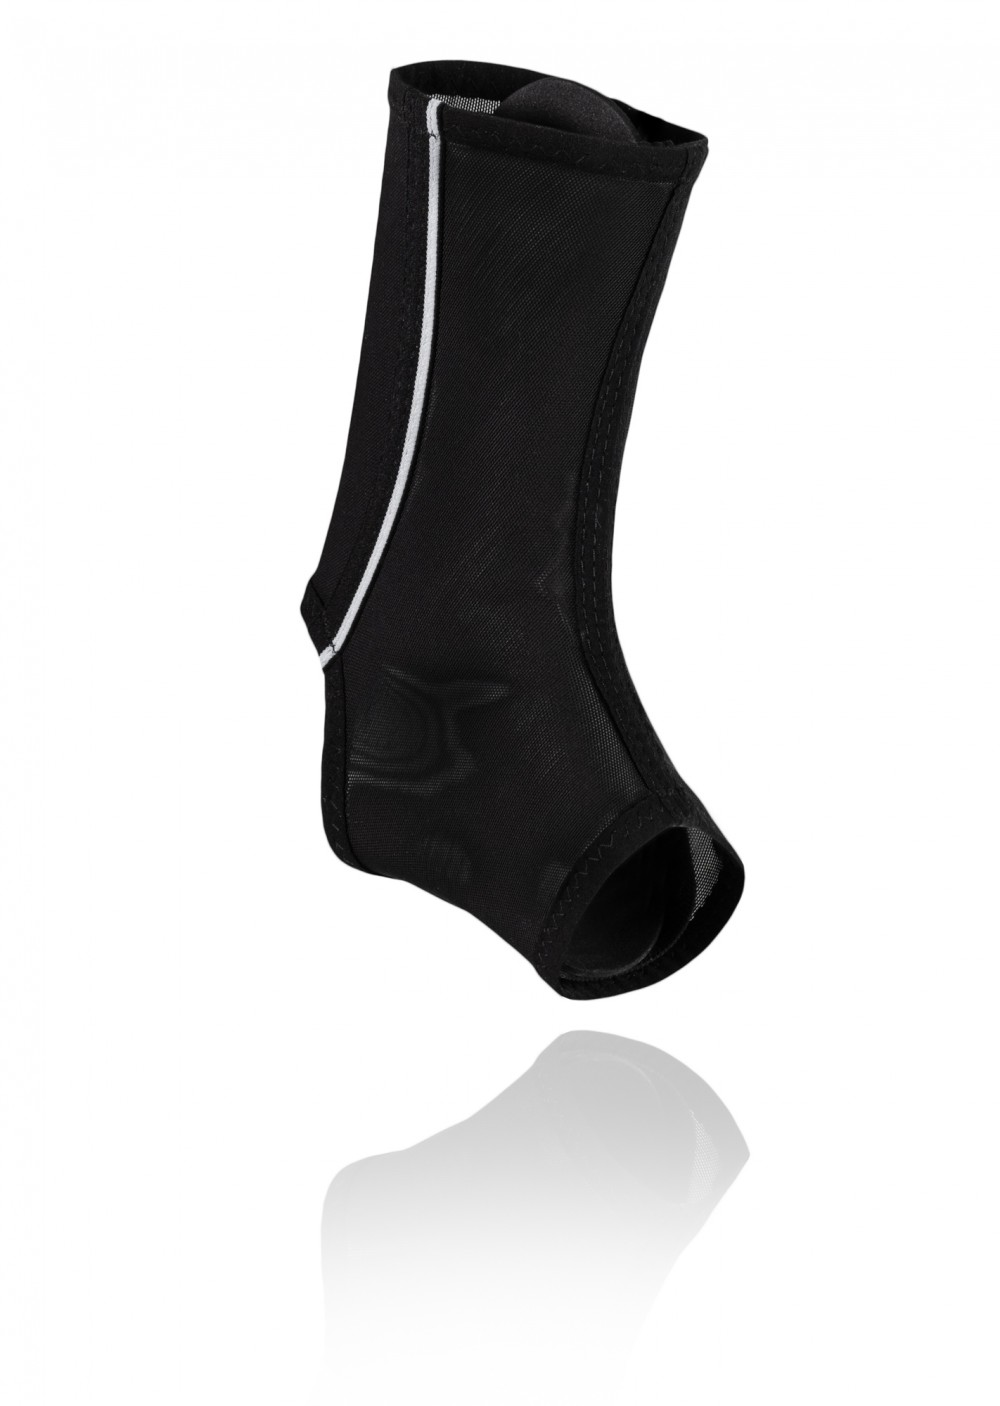 UD X-Stable Ankle Brace Black S